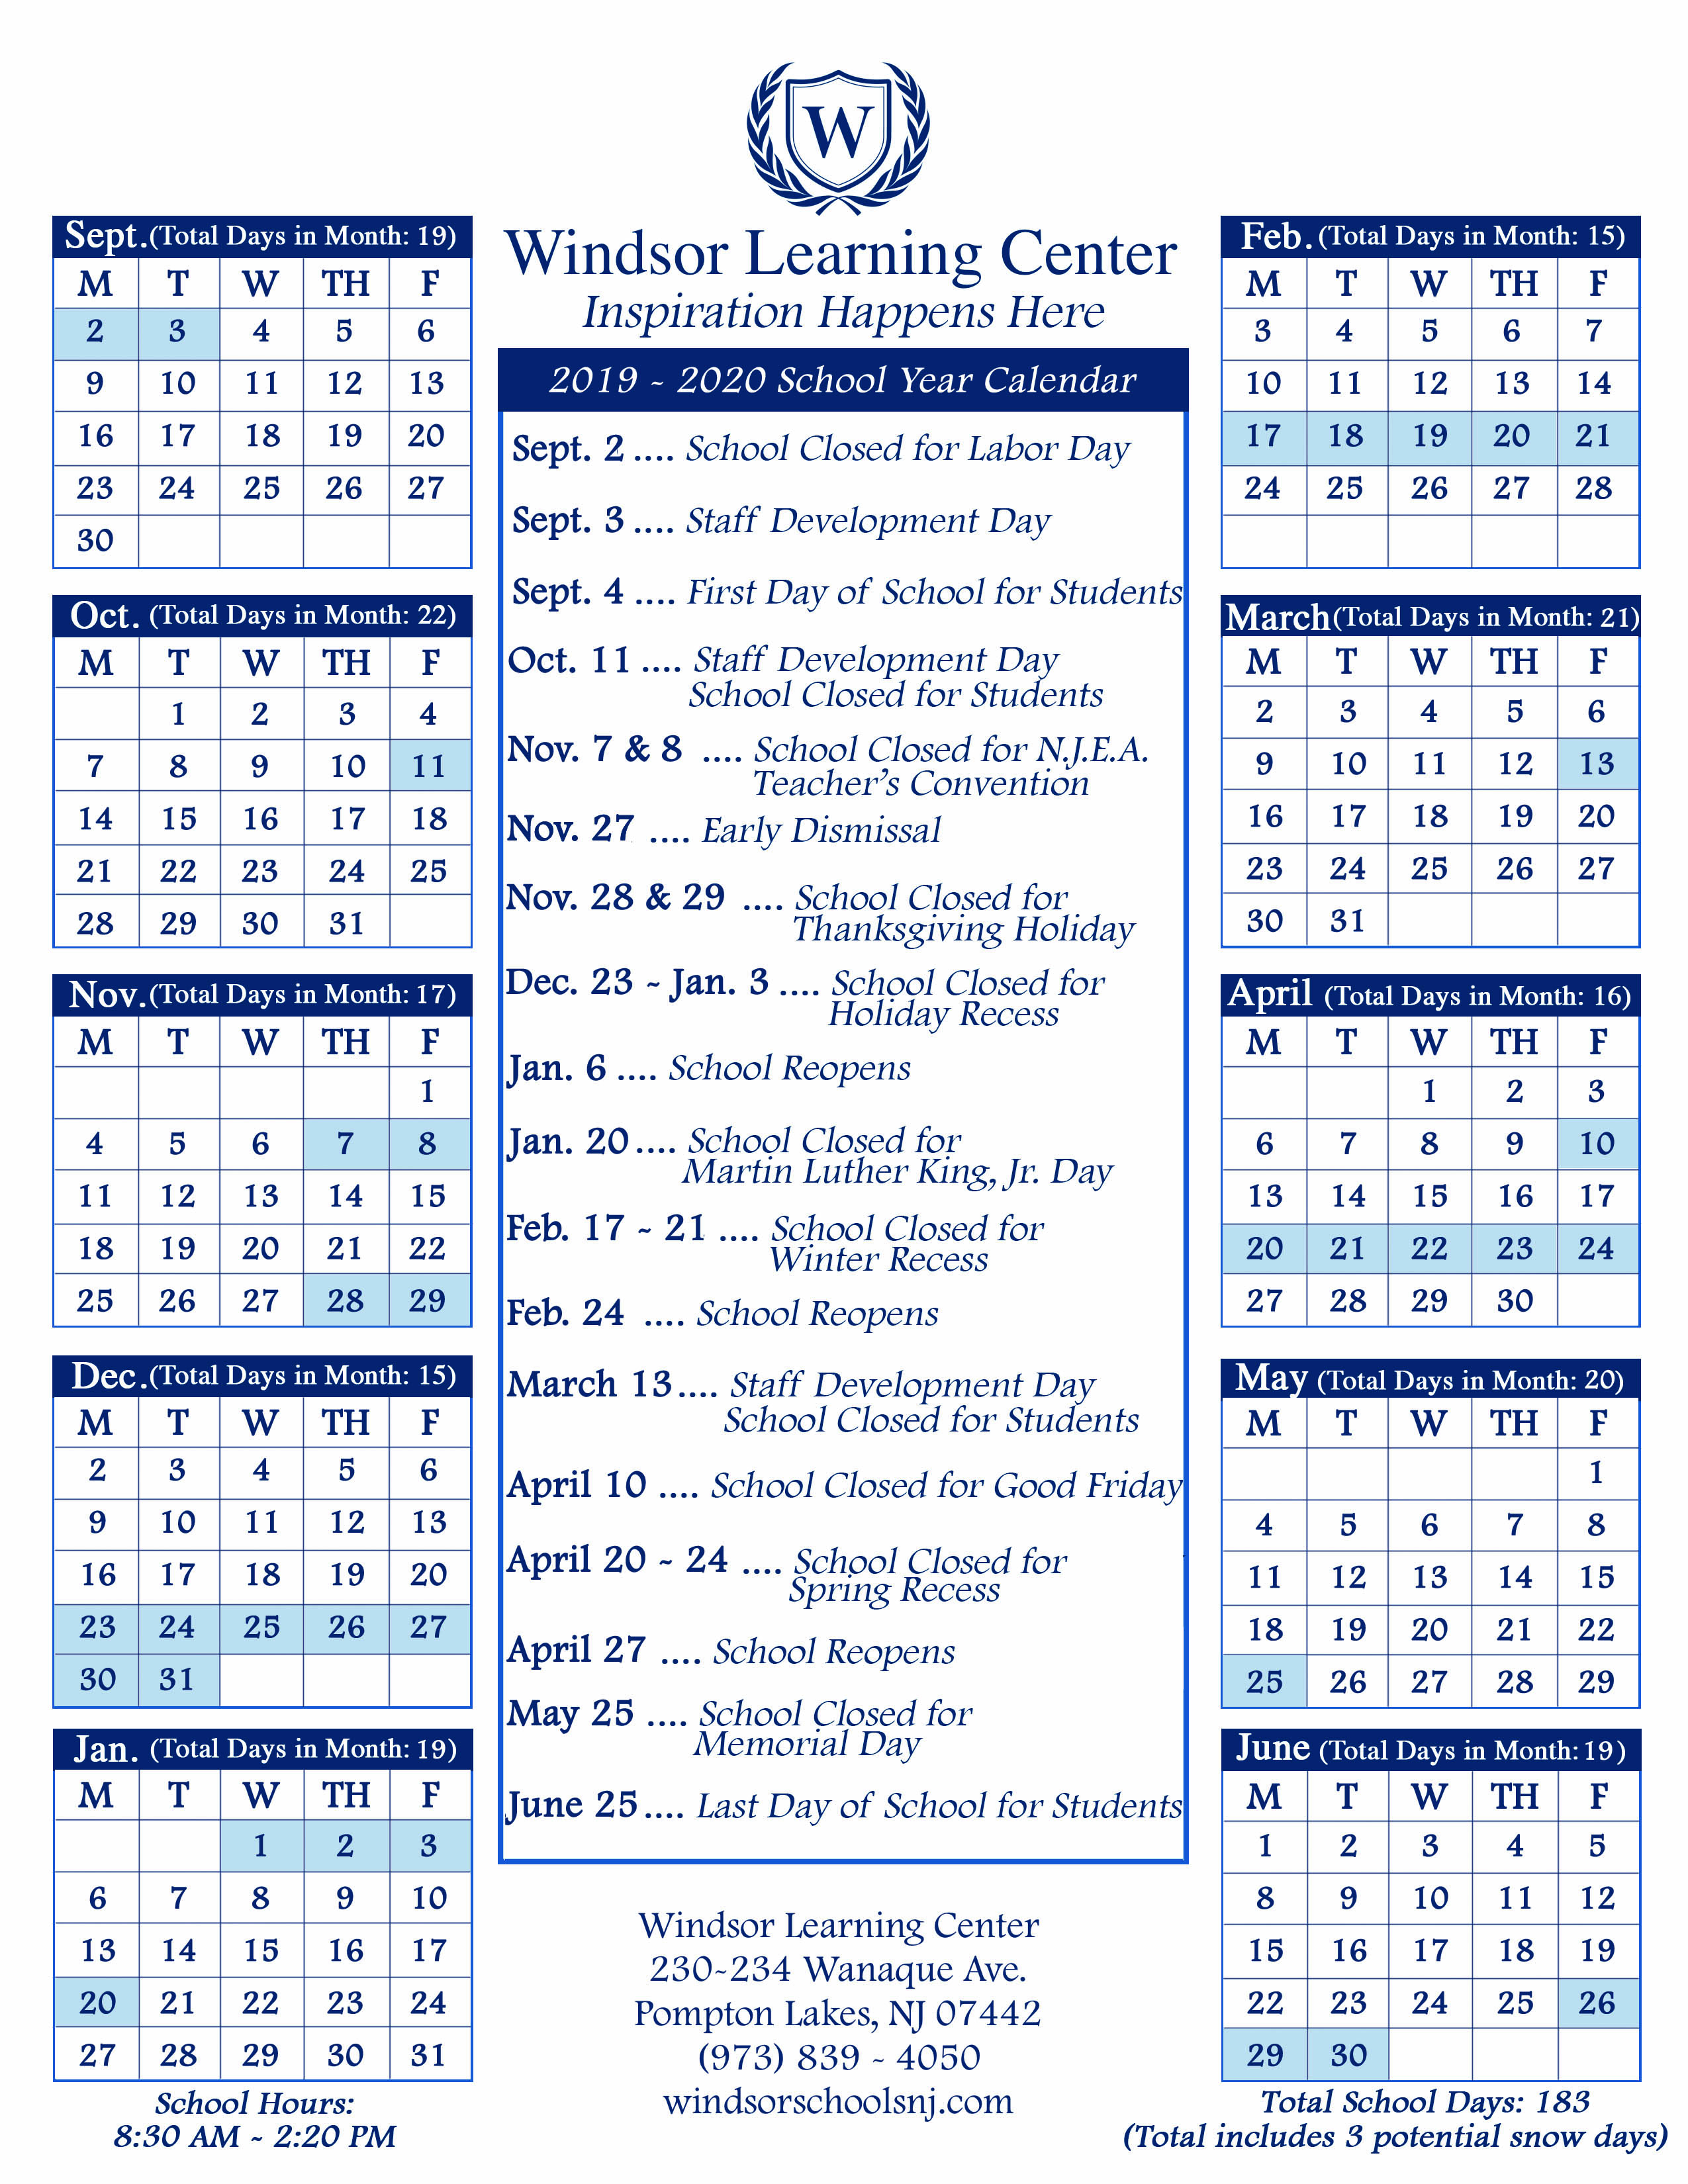 School Calendars - Windsor Schools With Academic Calender For Middlesex County College For 2021